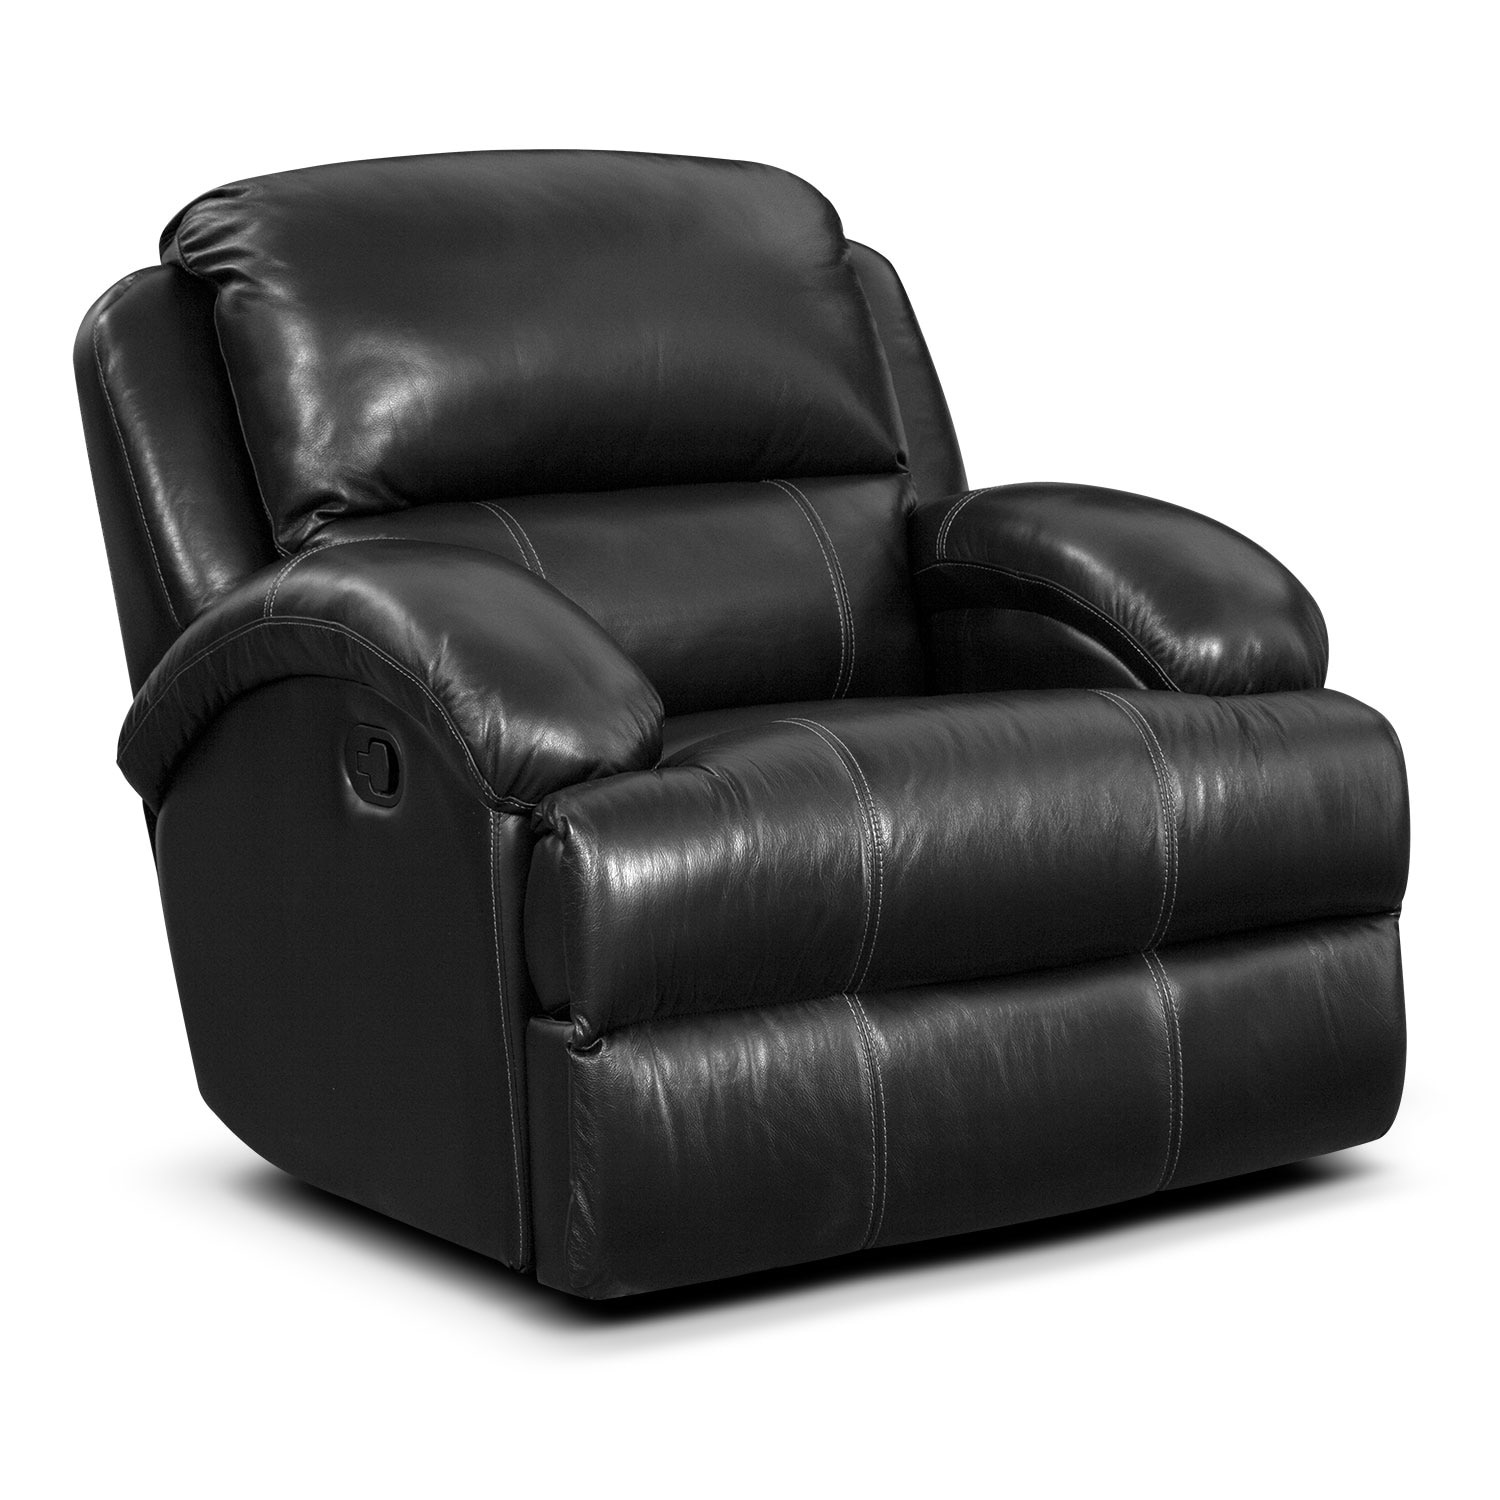 Living Room Furniture - Nolan II Glider Recliner